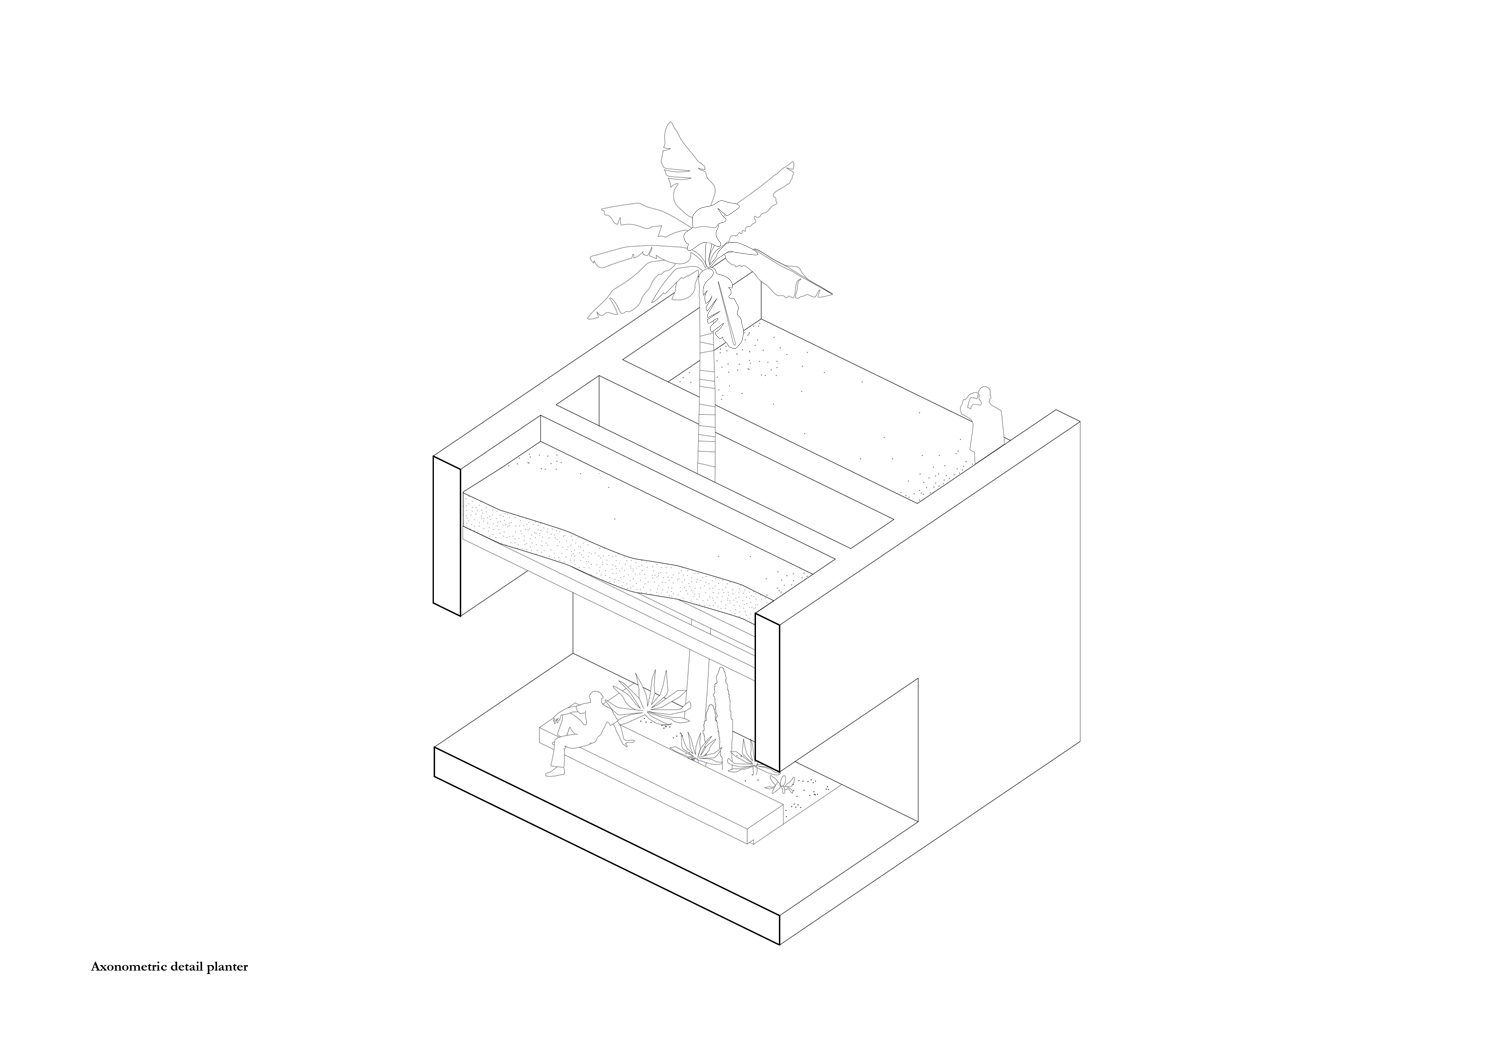 Axonometric view detail planter of the portico MORQ}